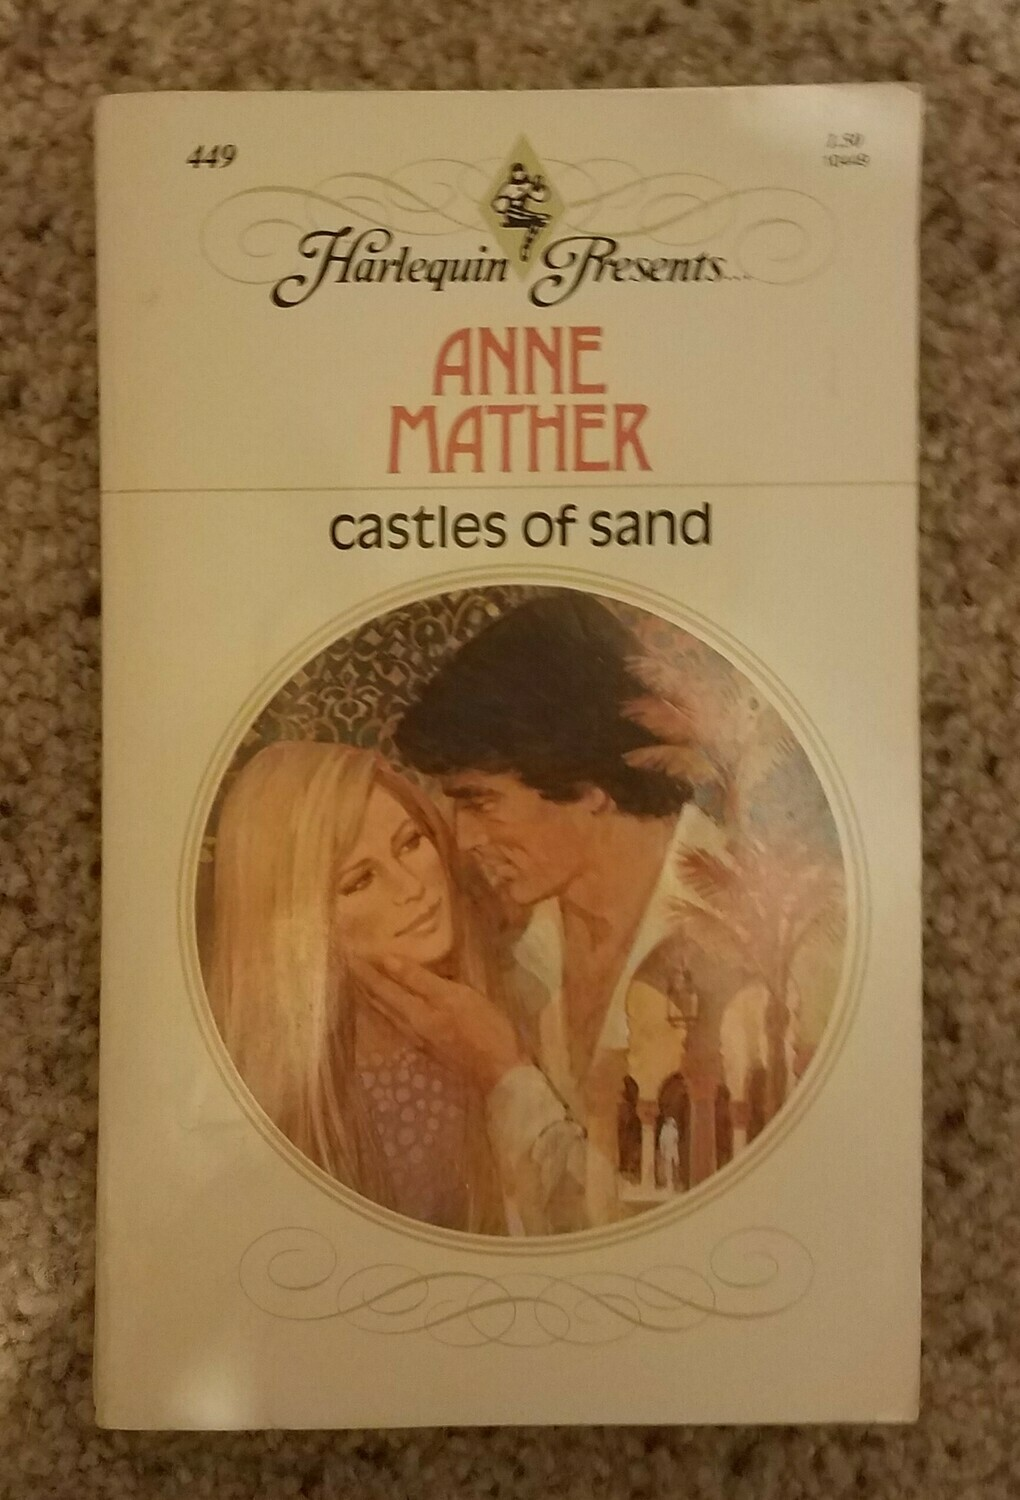 Castles of Sand by Anne Mather